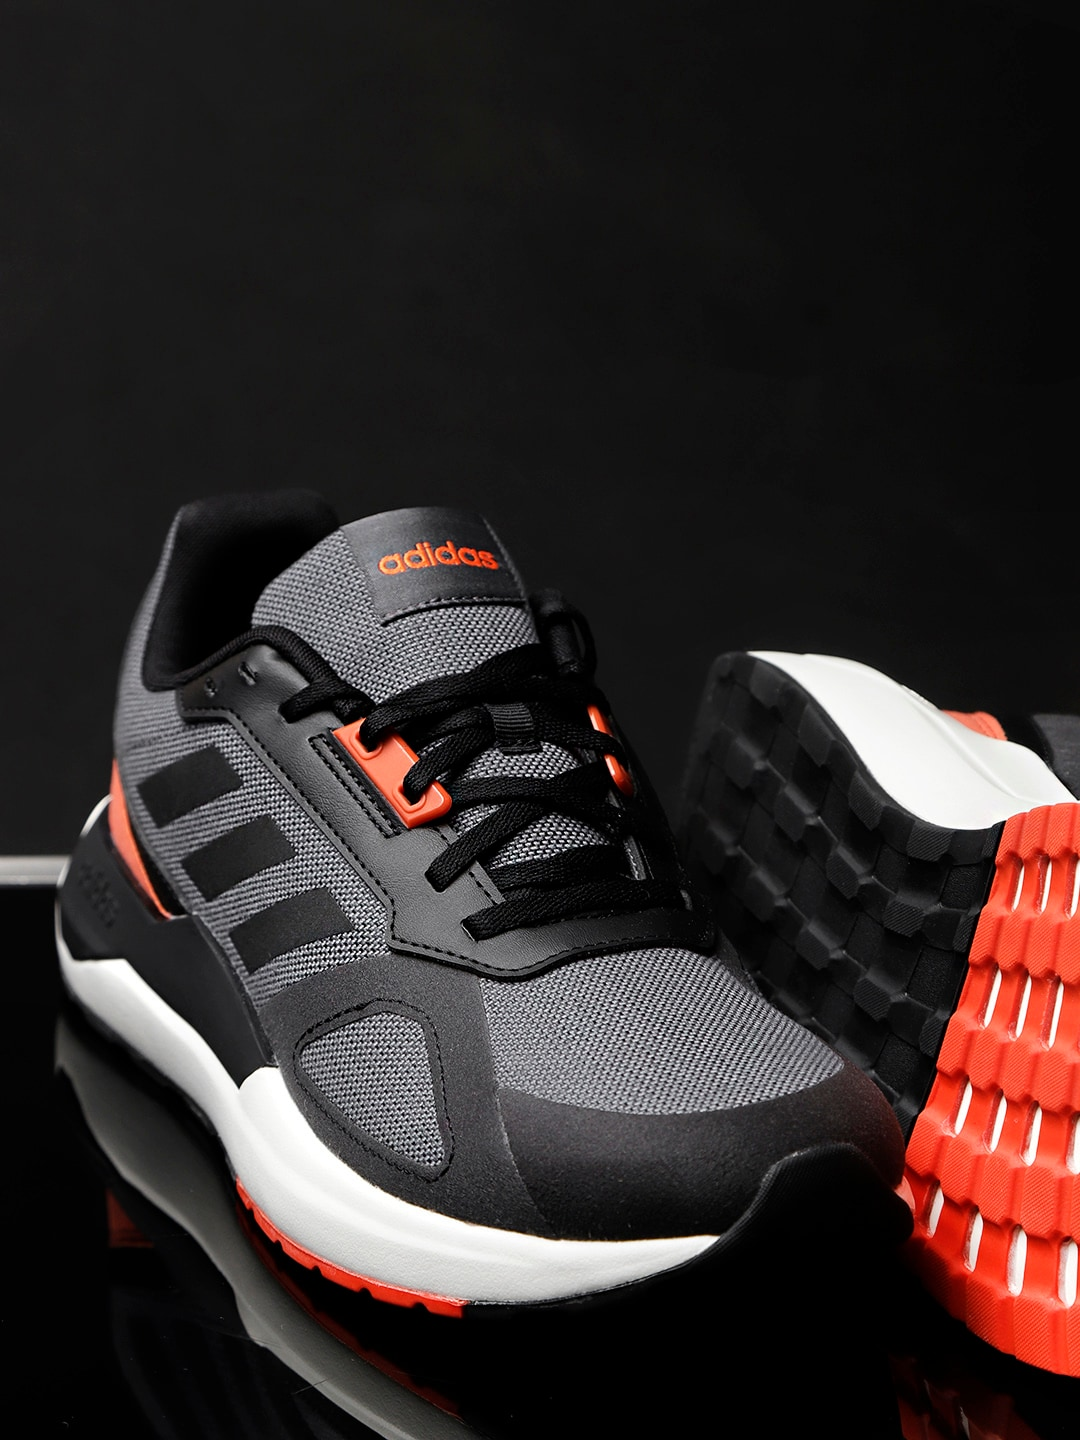 4046316a5 Adidas Riders - Buy Adidas Riders online in India